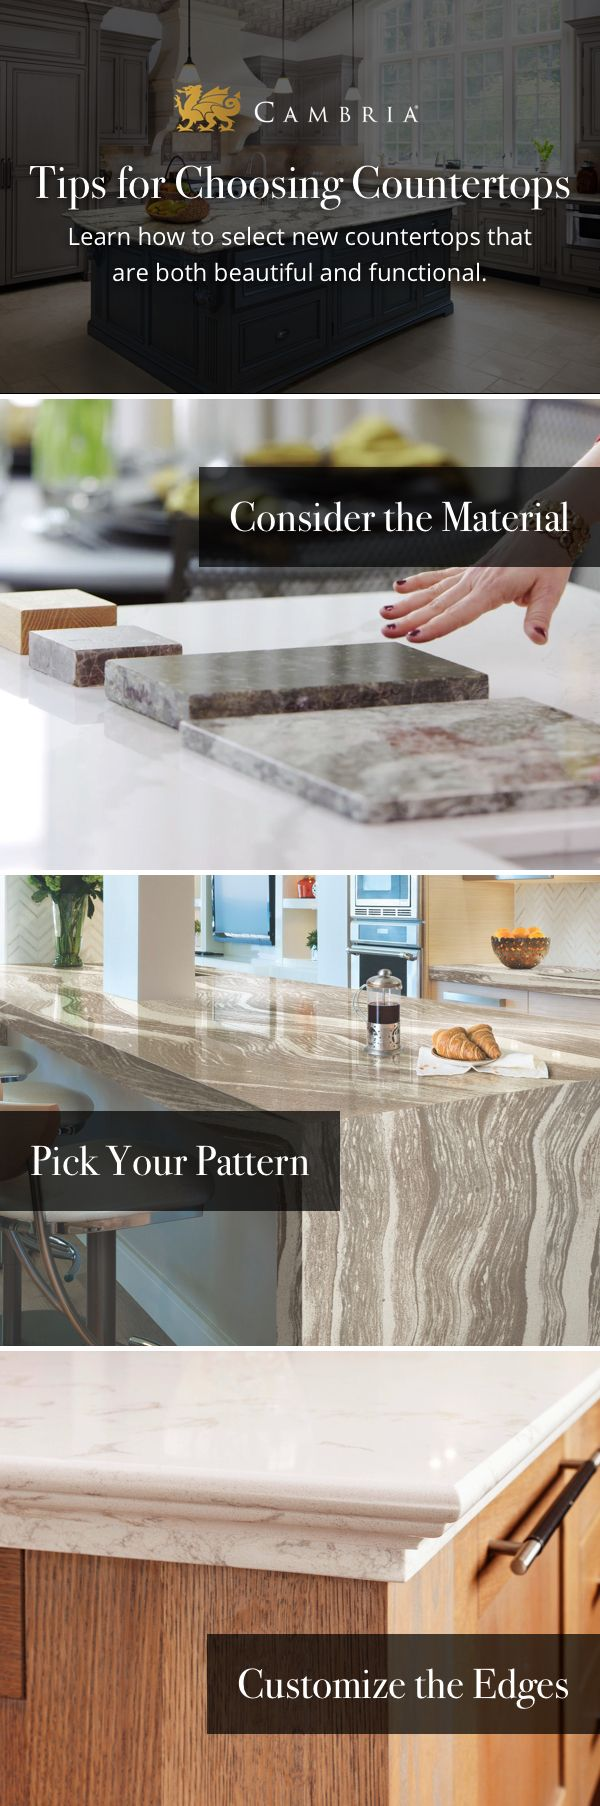 Find This Pin And More On Kitchen Inspiration Course